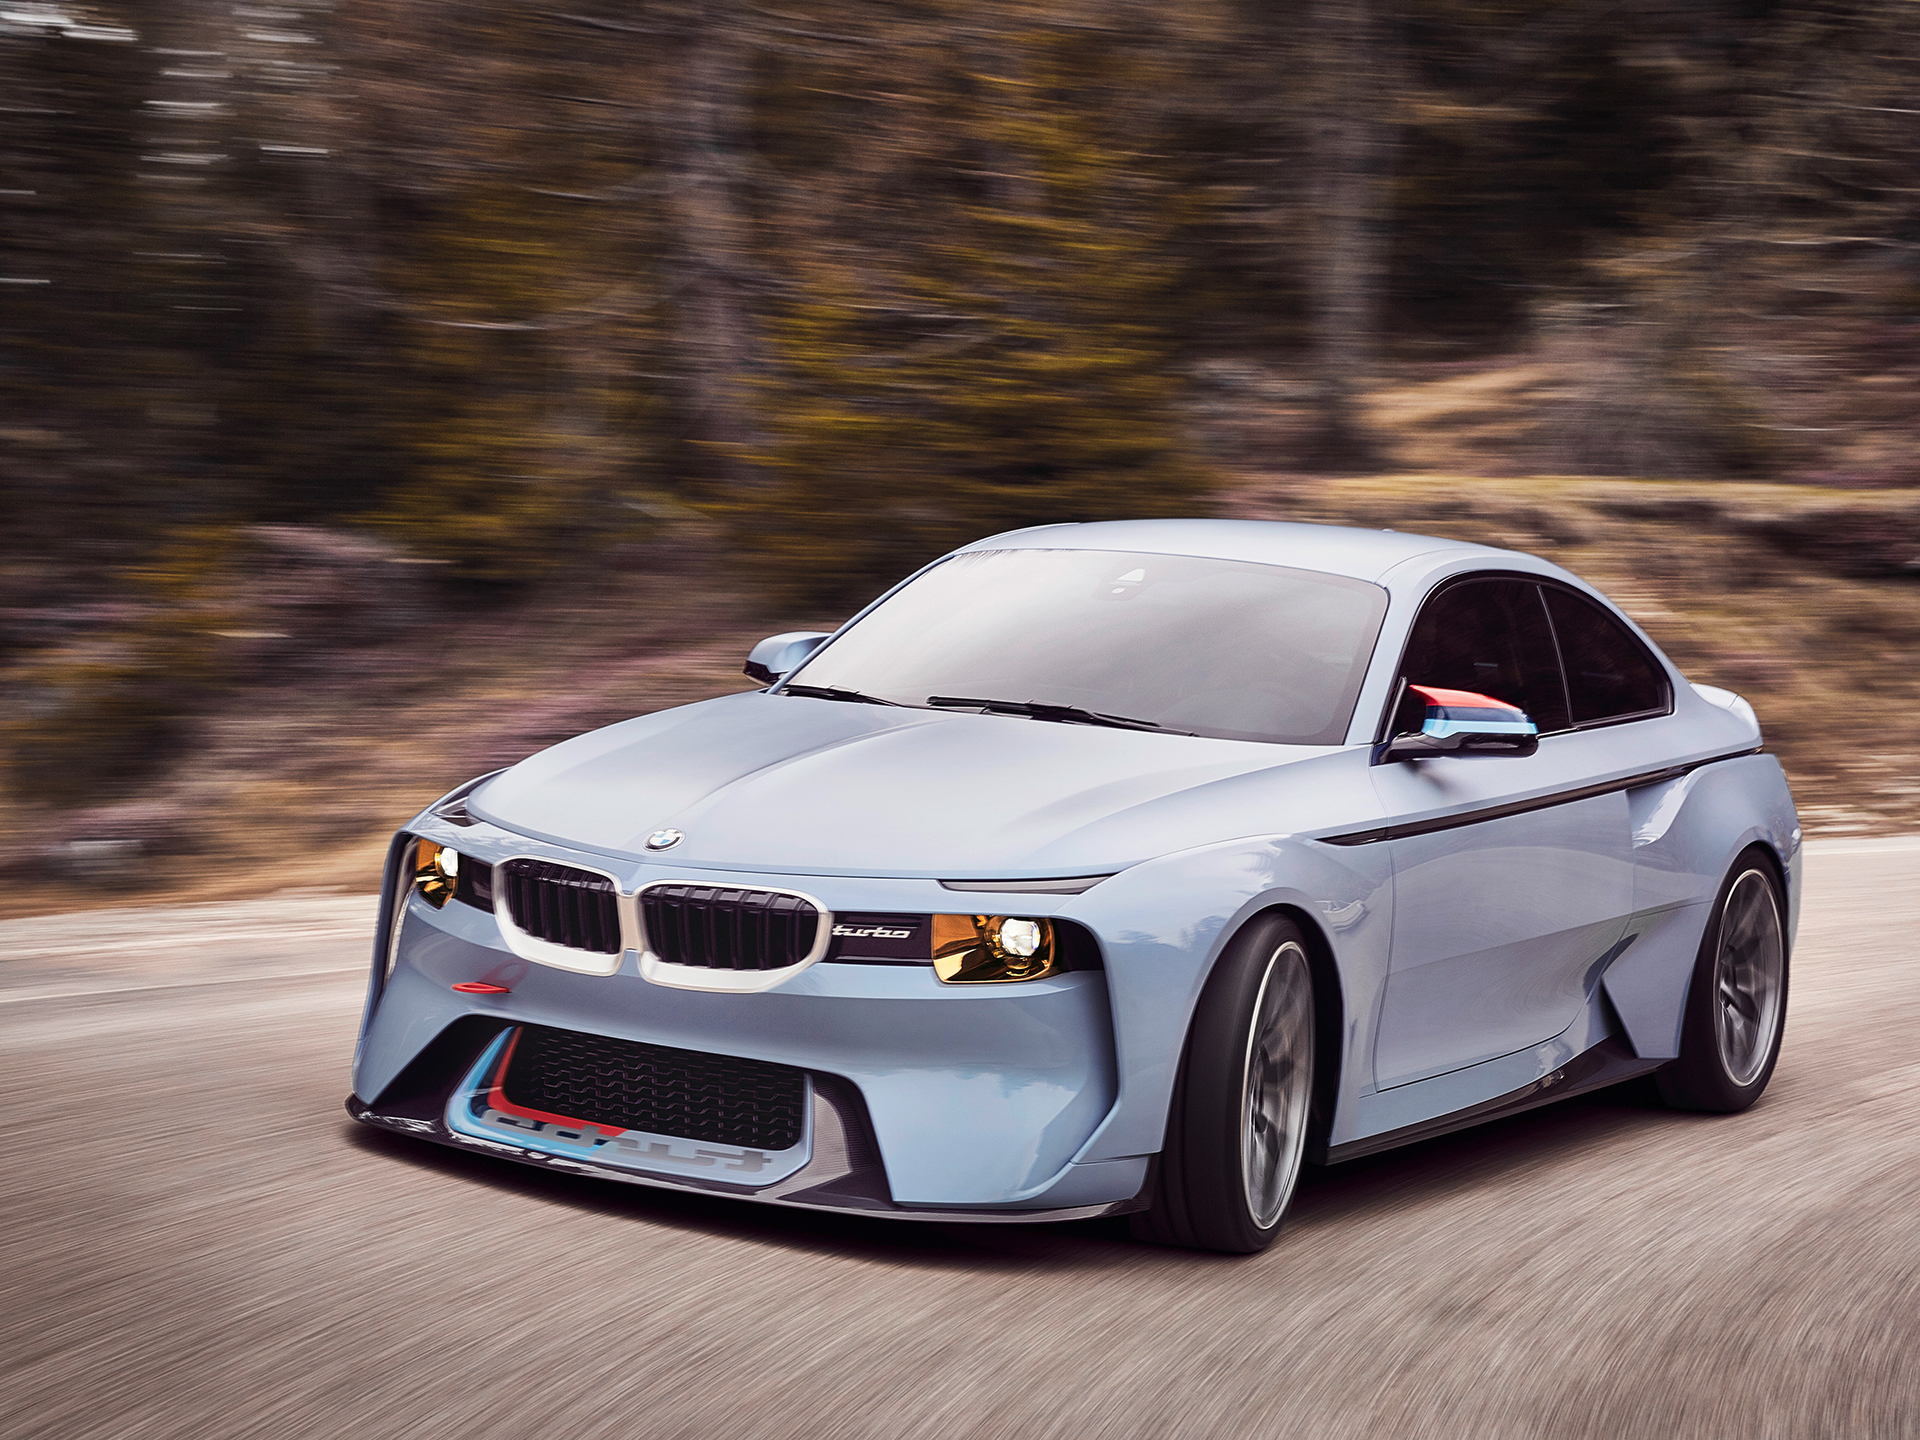 BMW 2002 Hommage - 2016 - front side-face / profil avant